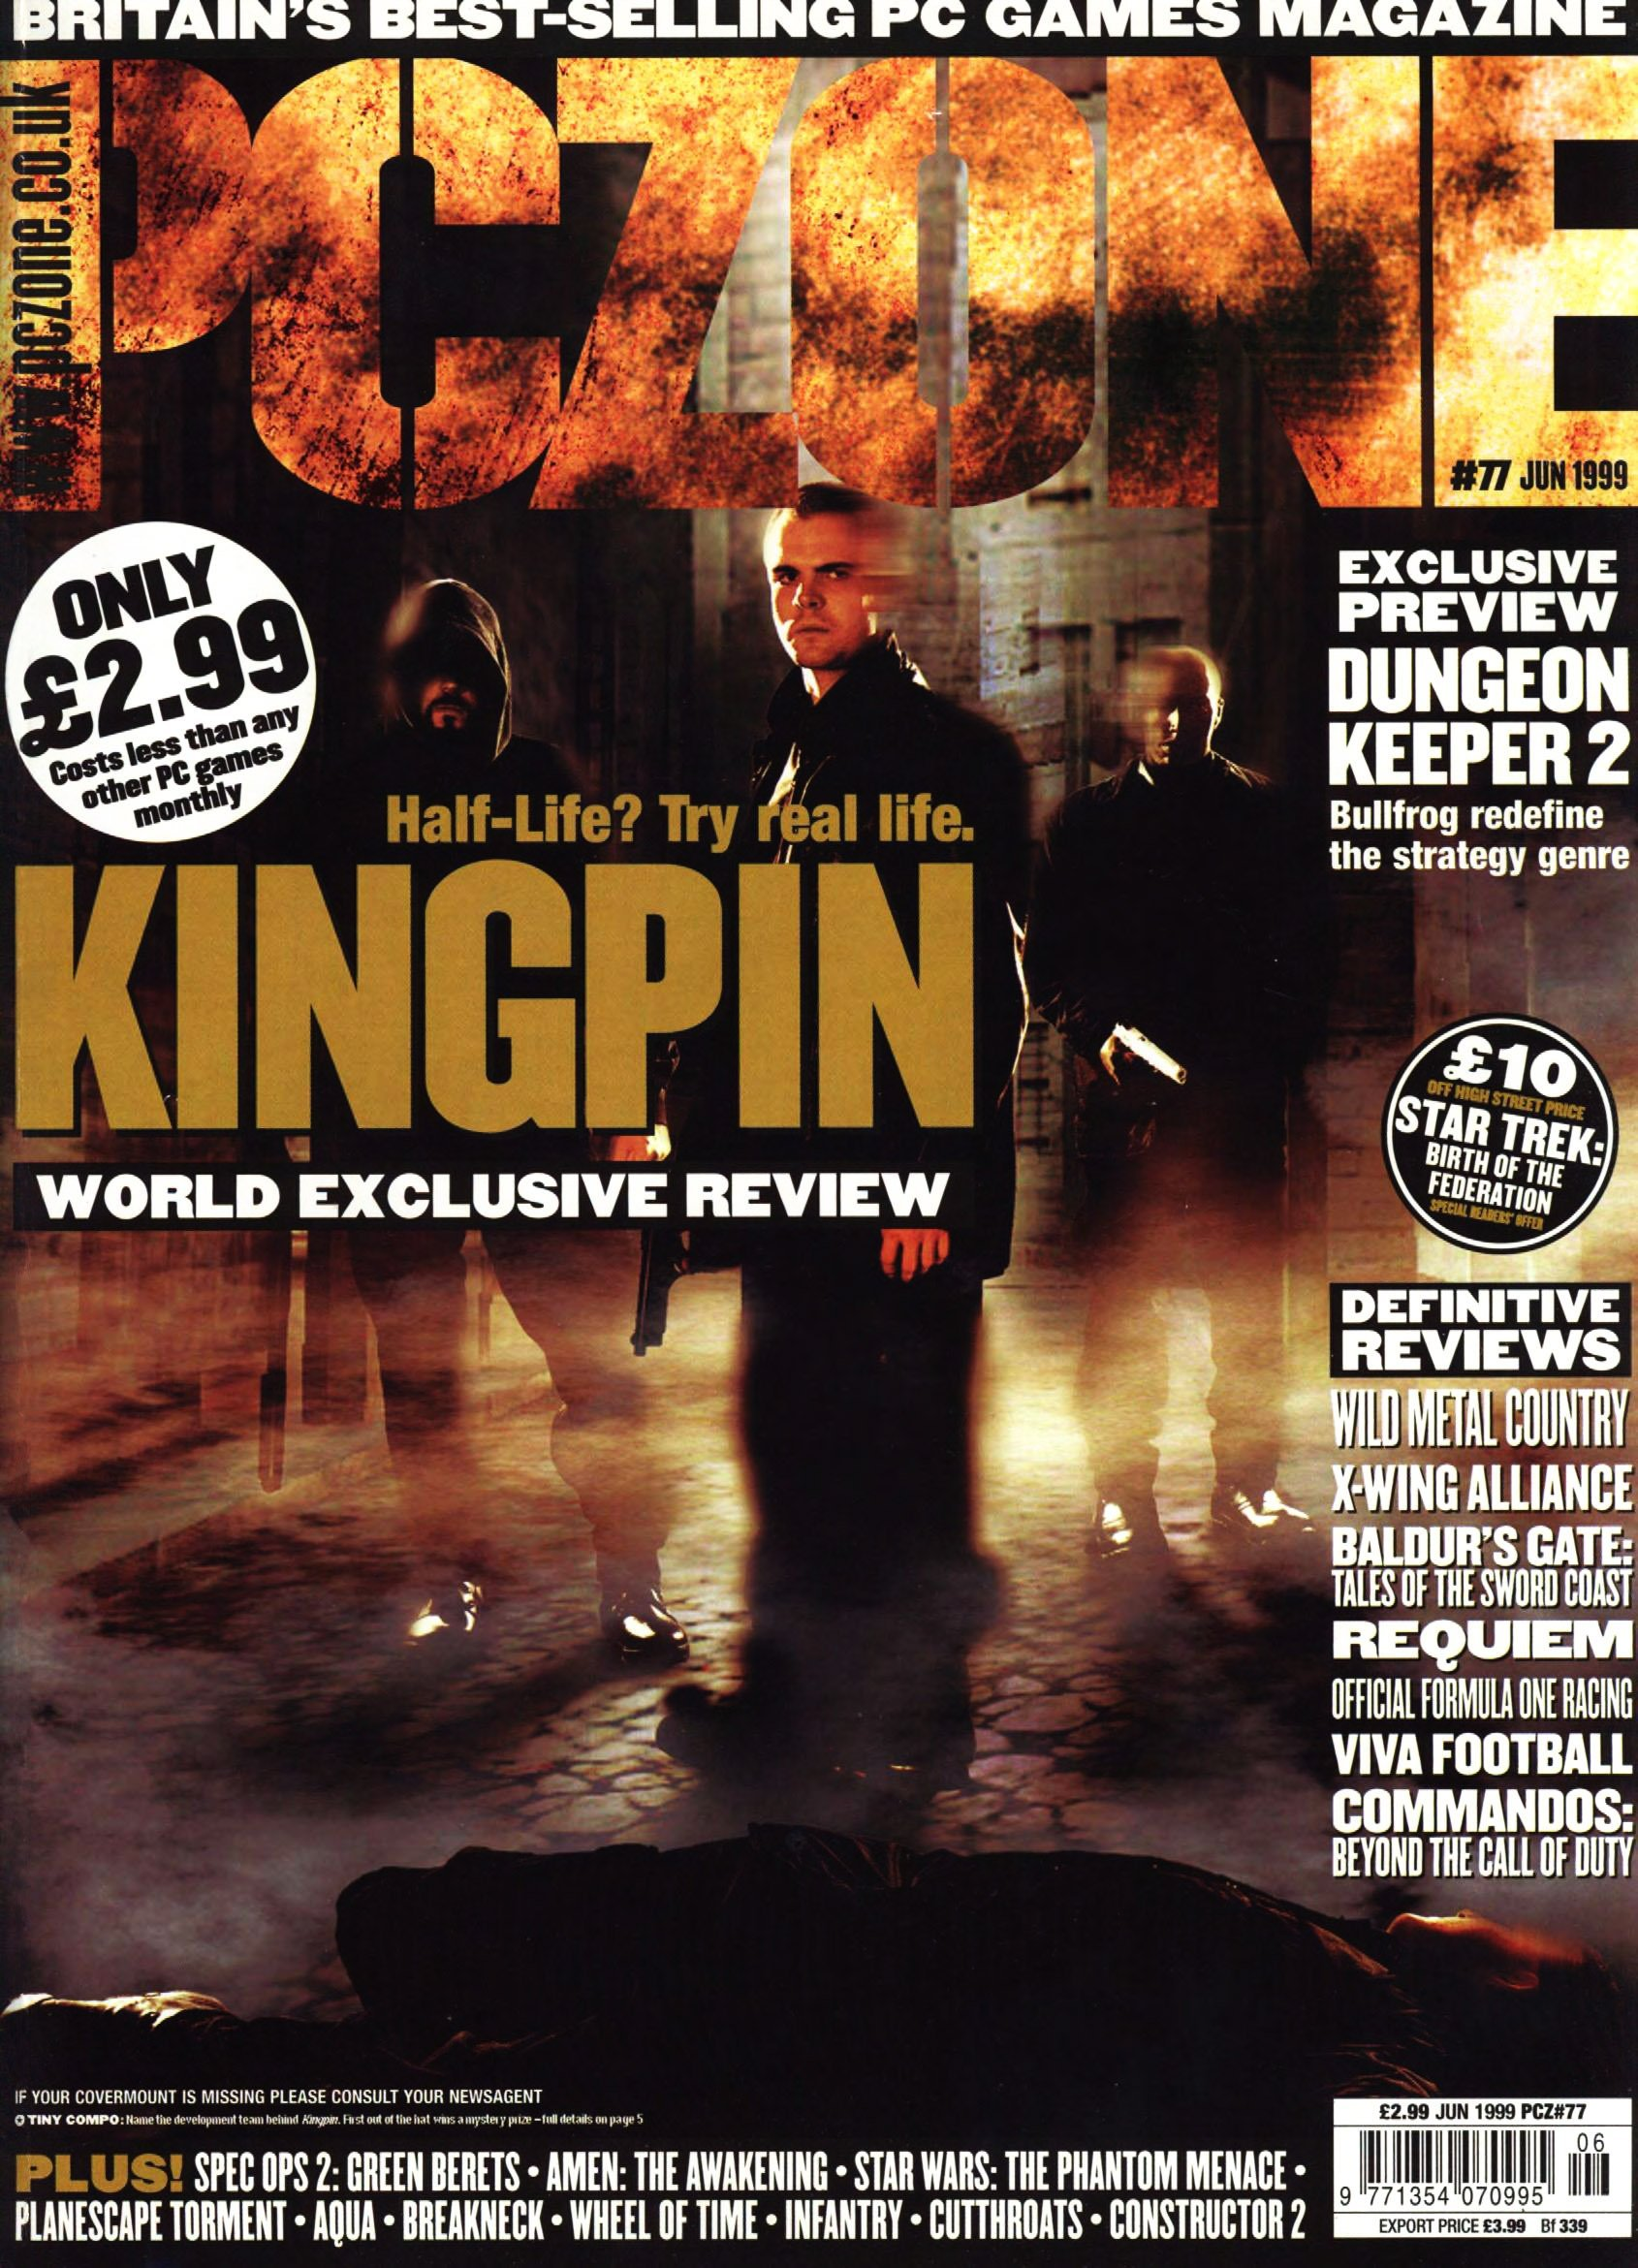 PC Zone Issue 077 (June 1999)